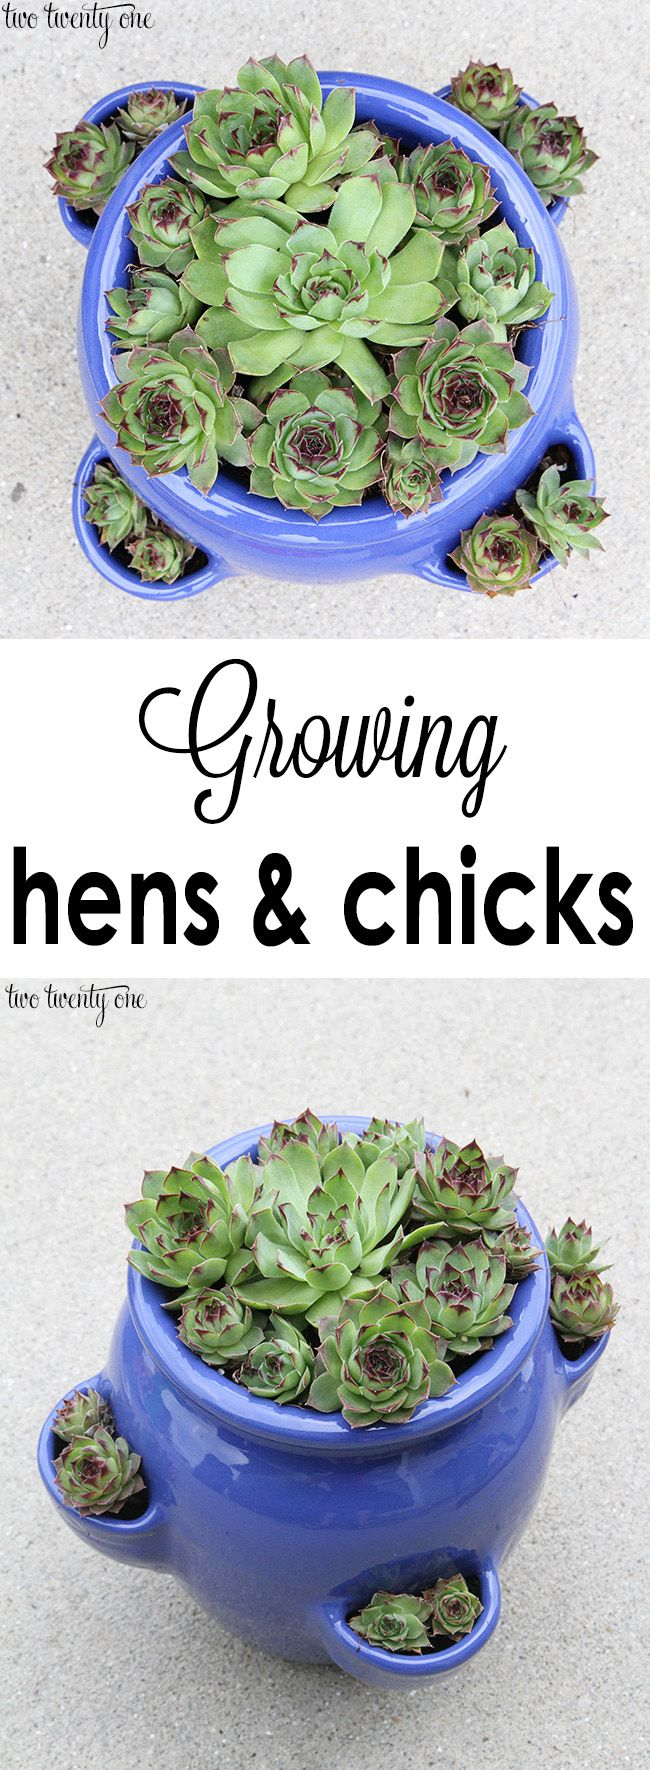 Tips and tricks for growing hens and chicks!